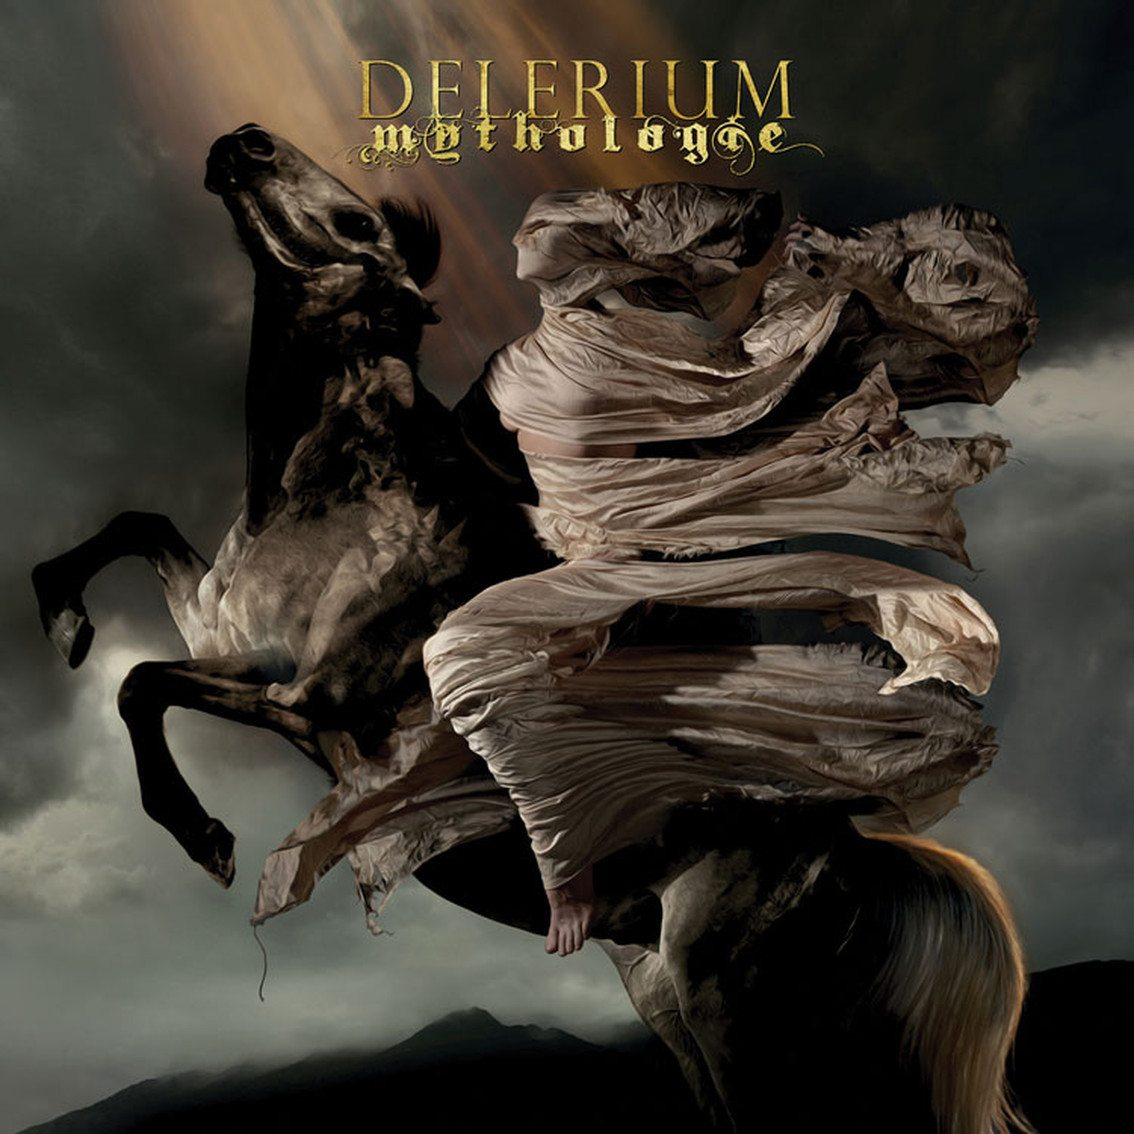 New Delerium album'Mythologie' available now in pre-order on vinyl (and CD) and it's Metropolis Records 1000th release!